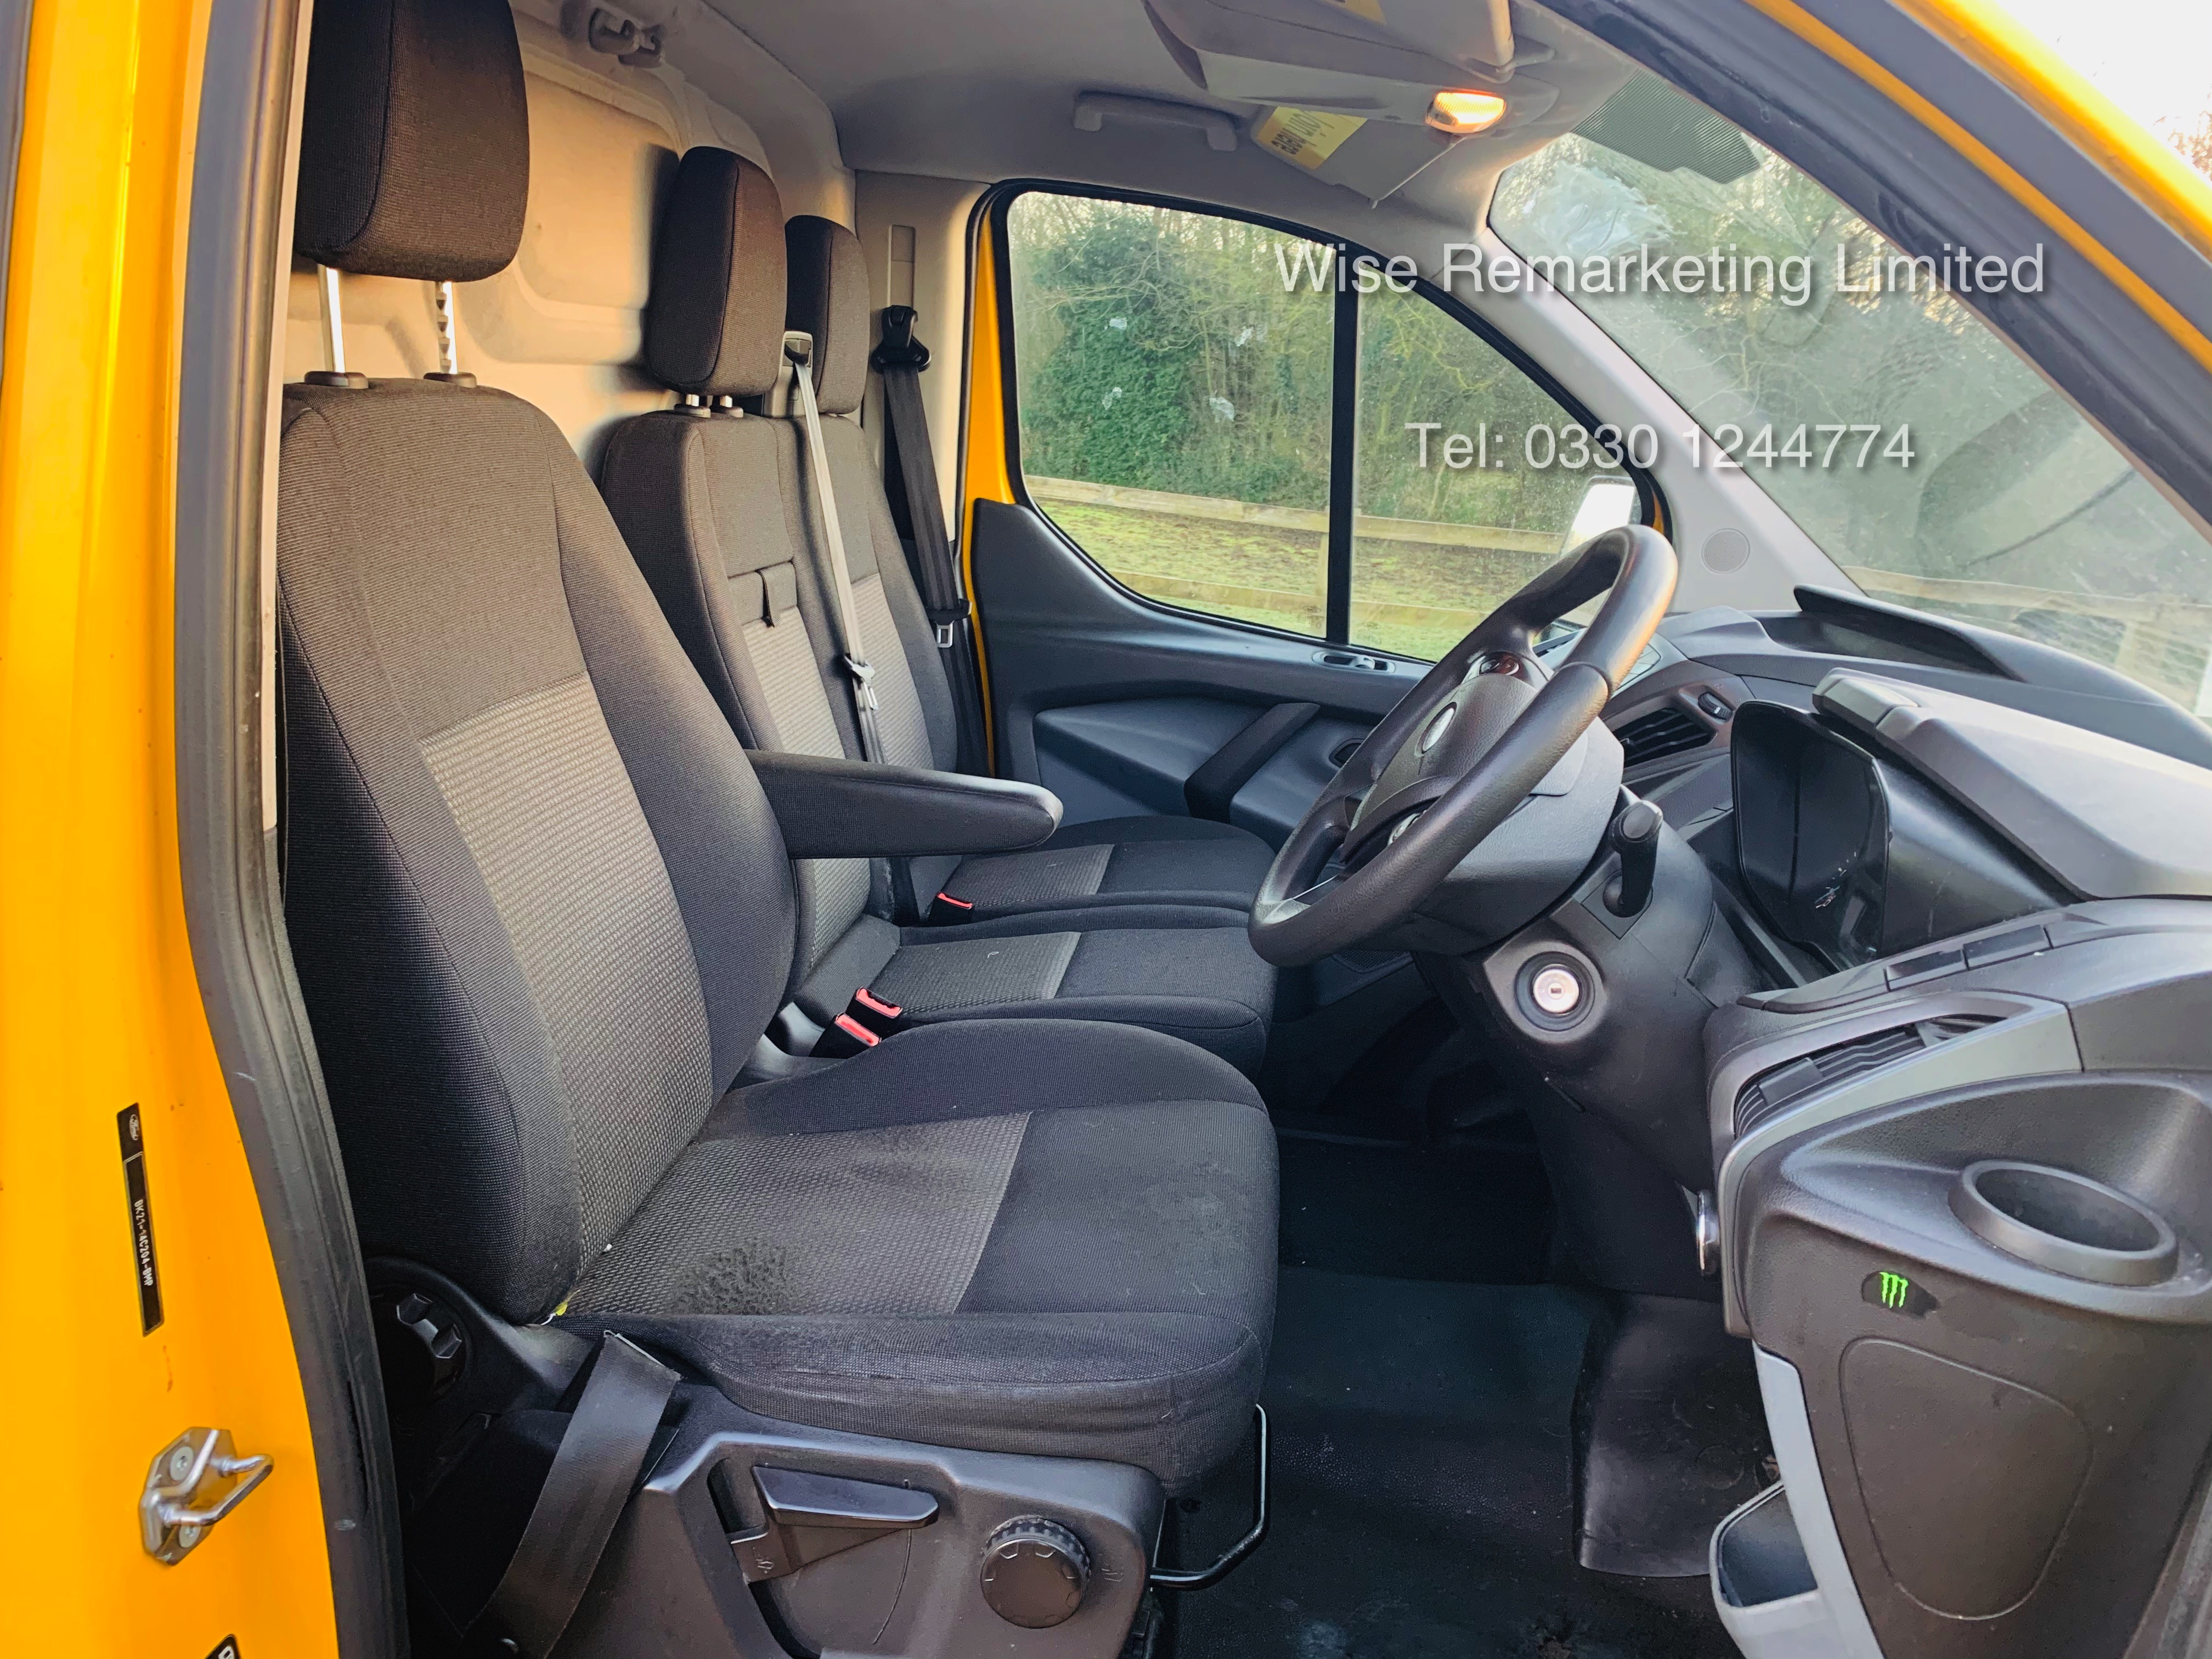 Ford Transit Custom 2.2 TDCI 310 Eco-Tech - 2016 Model - 1 Keeper From New - Air Con - Ex AA Van - Image 13 of 23